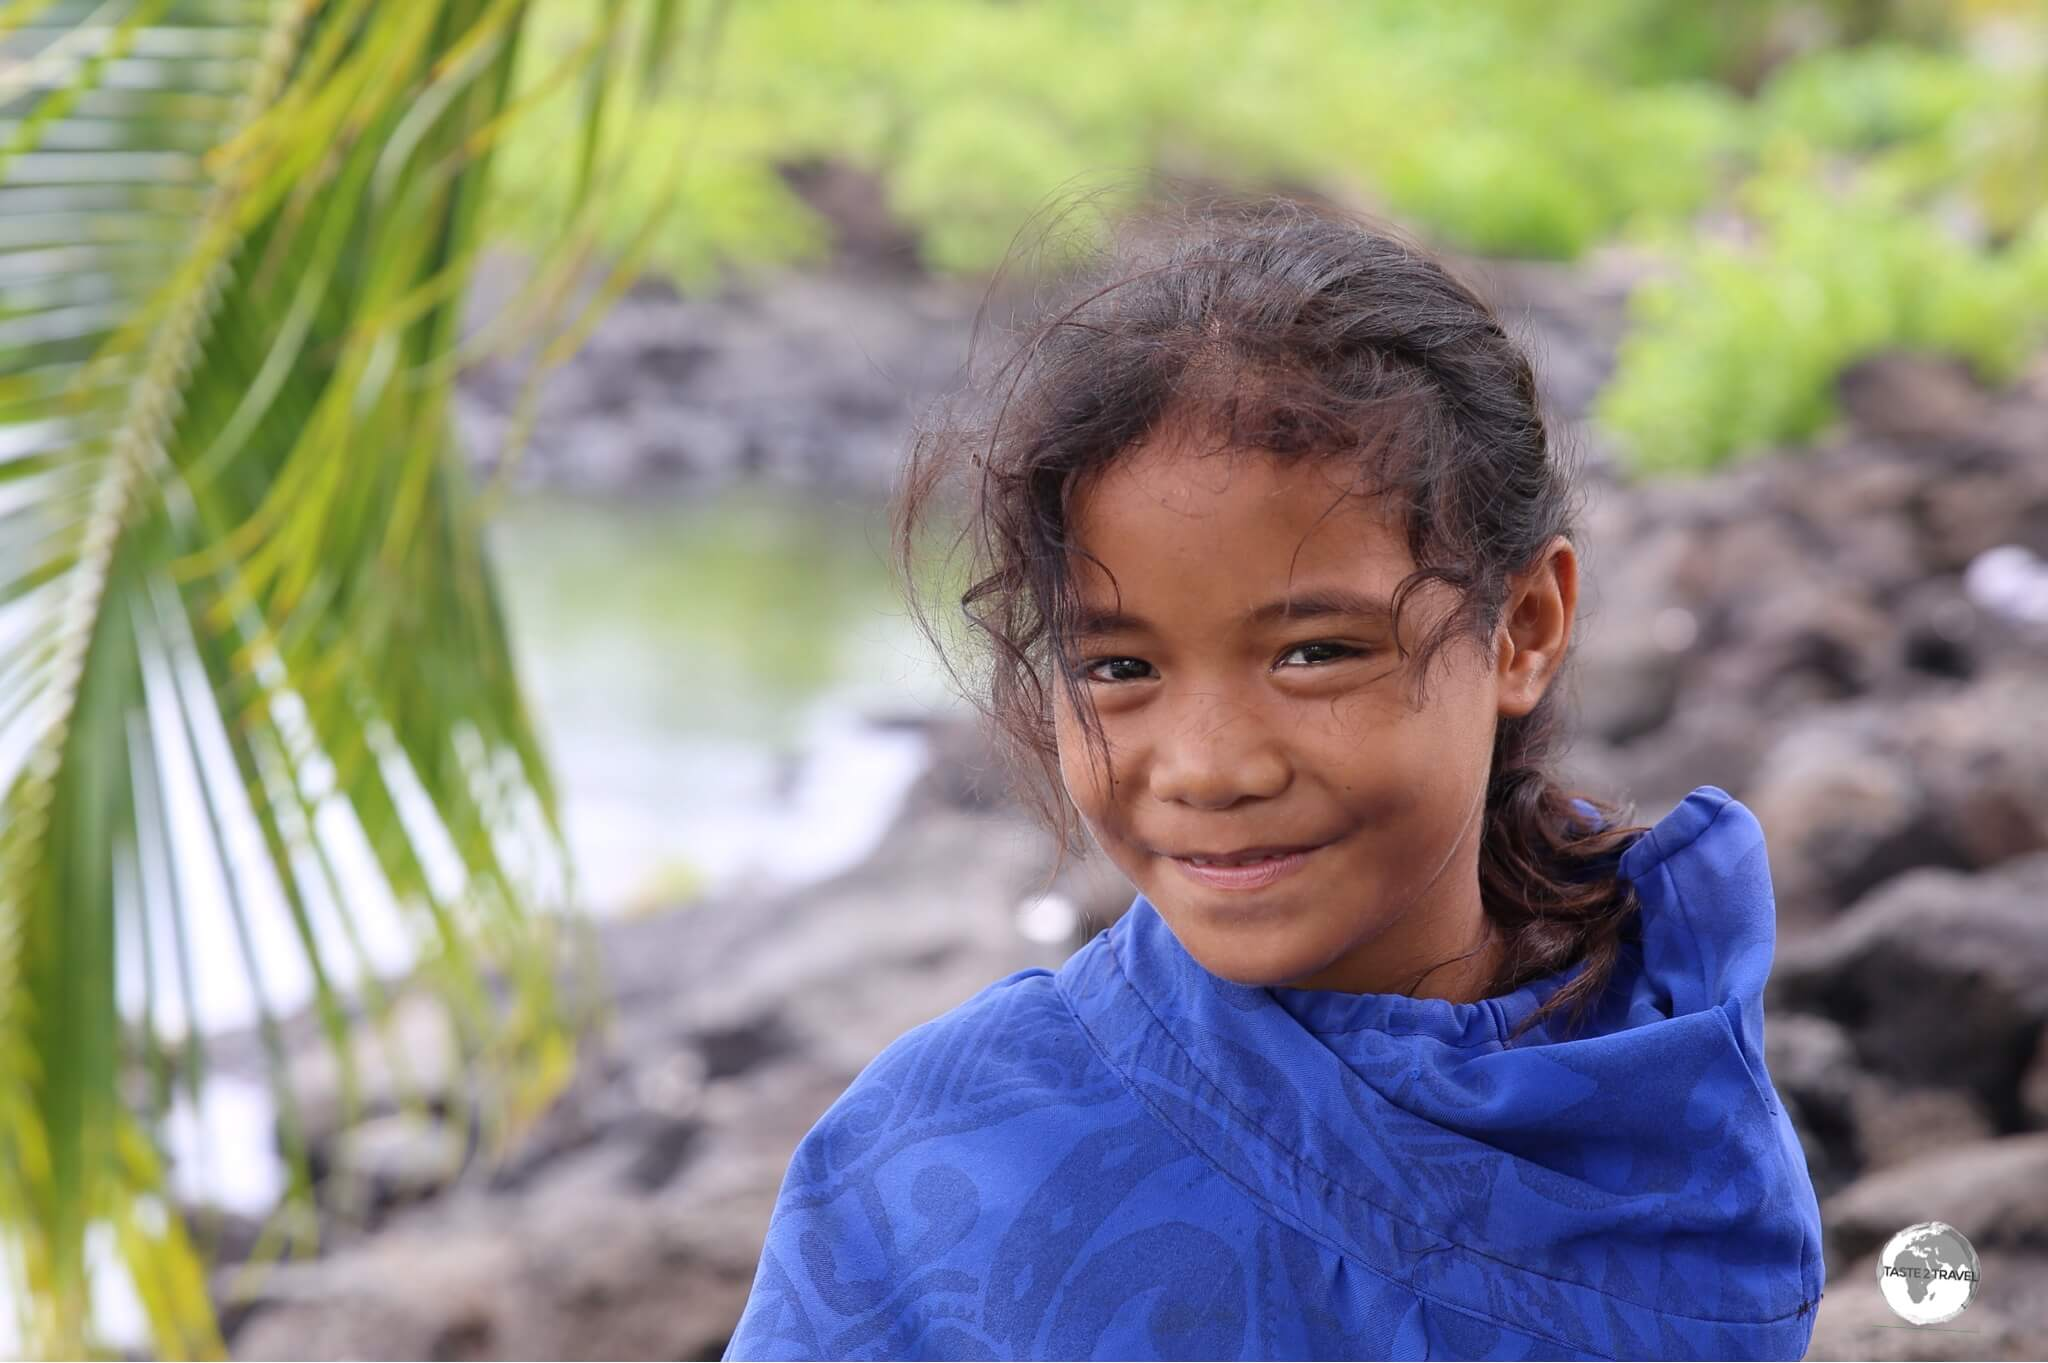 Almost all Samoans are Polynesians and are some of the nicest people you could ever hope to meet.